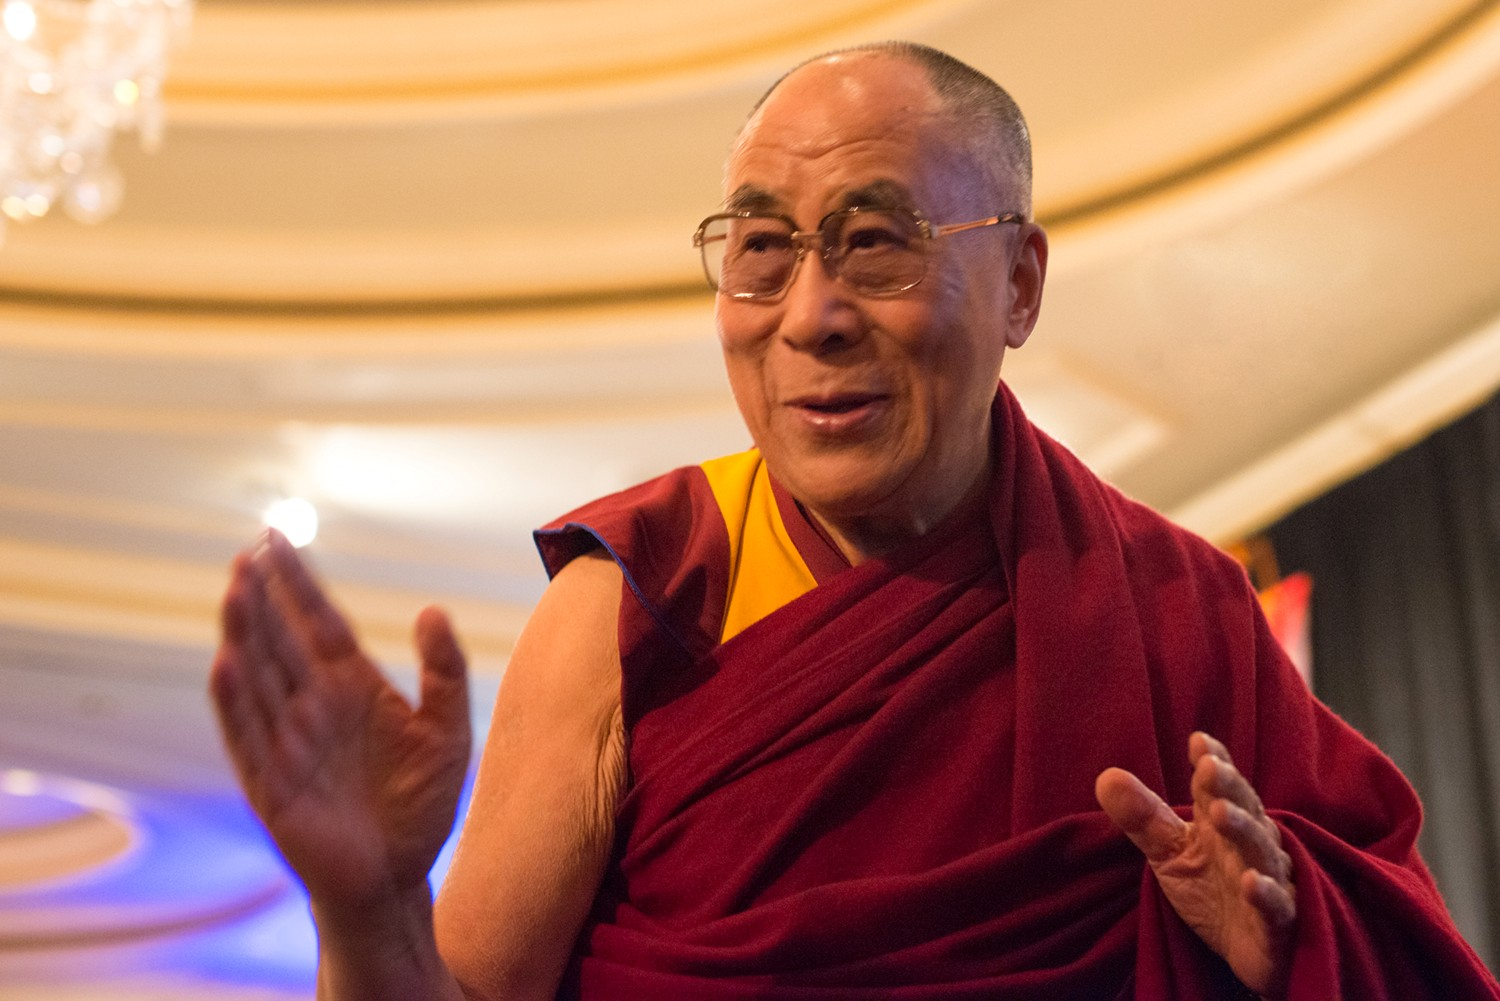 Press freedom at stake in Nepal: Journalists under probe for news about Dalai Lama